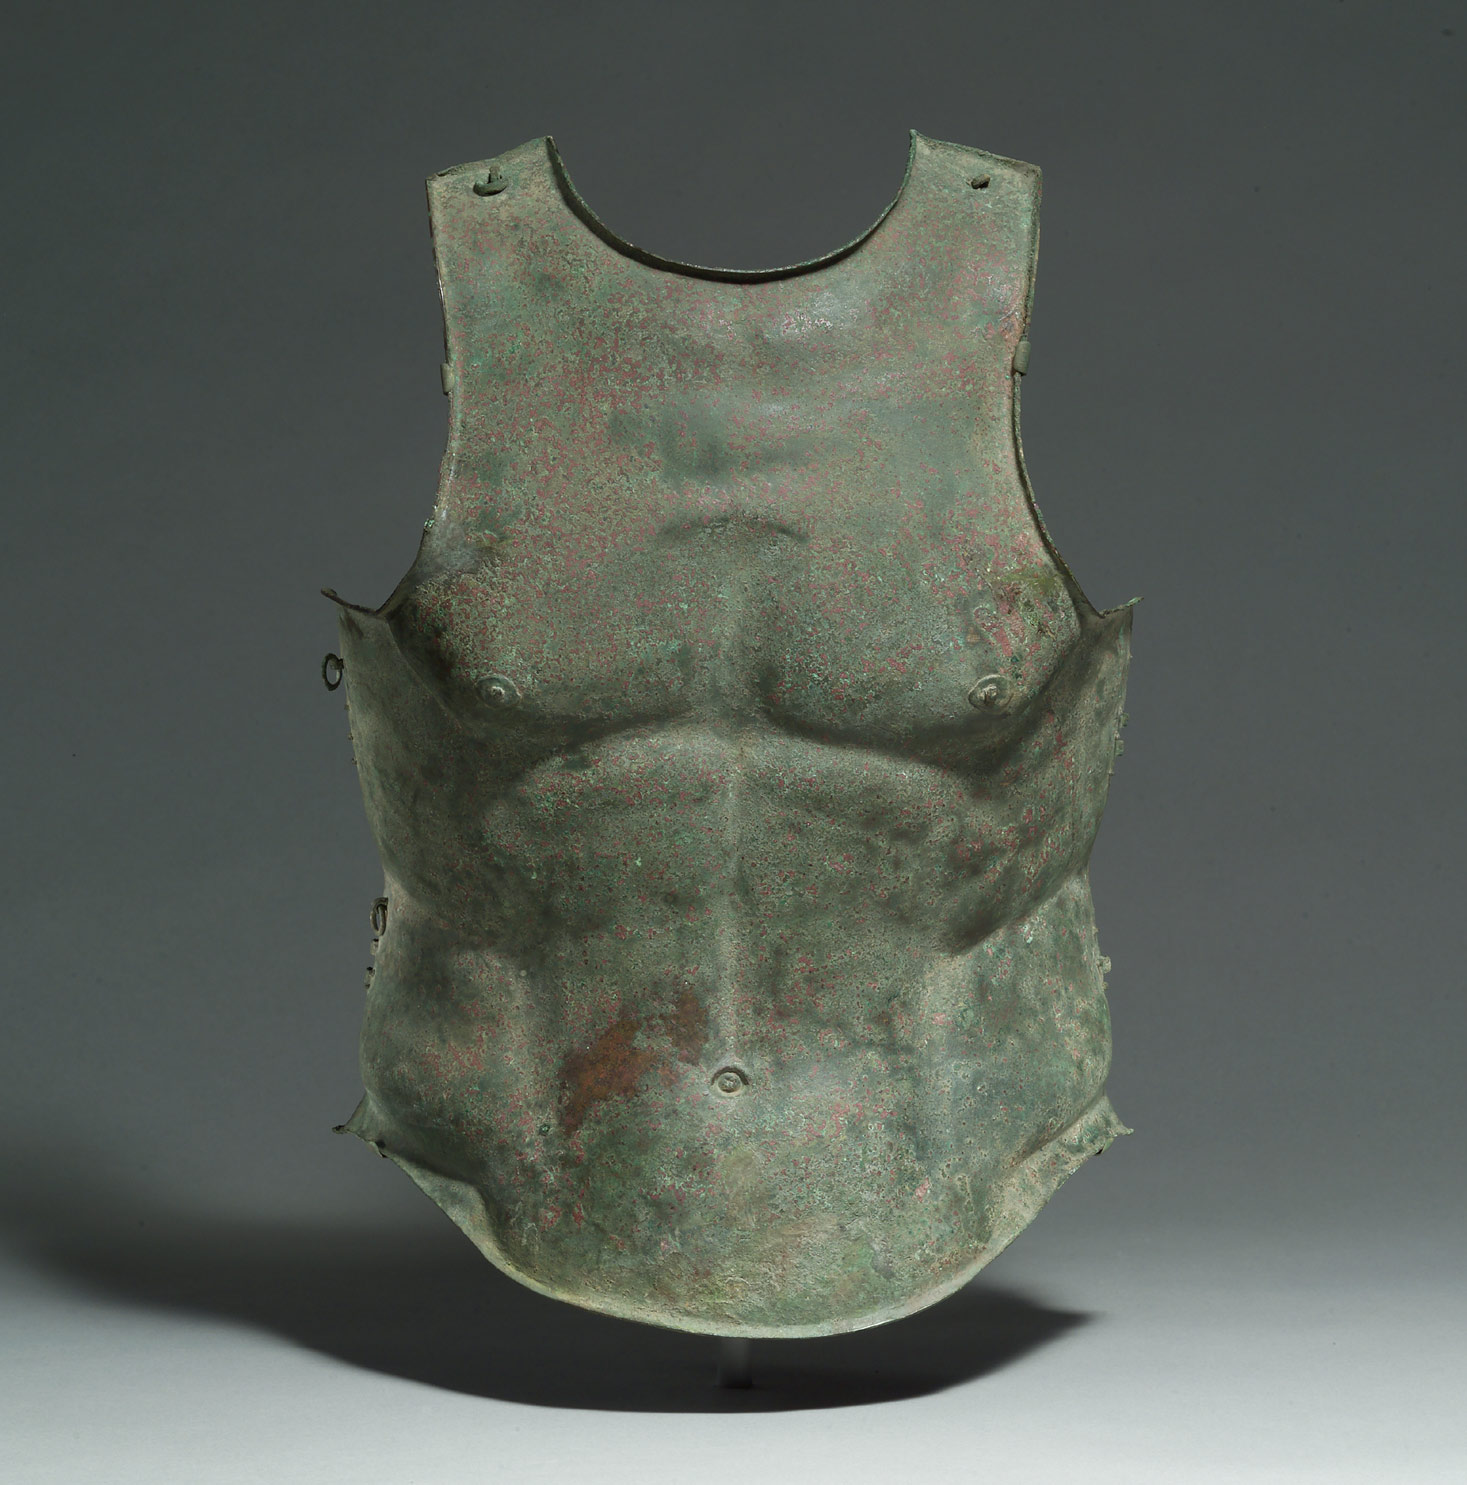 Bronze cuirass (body armor)